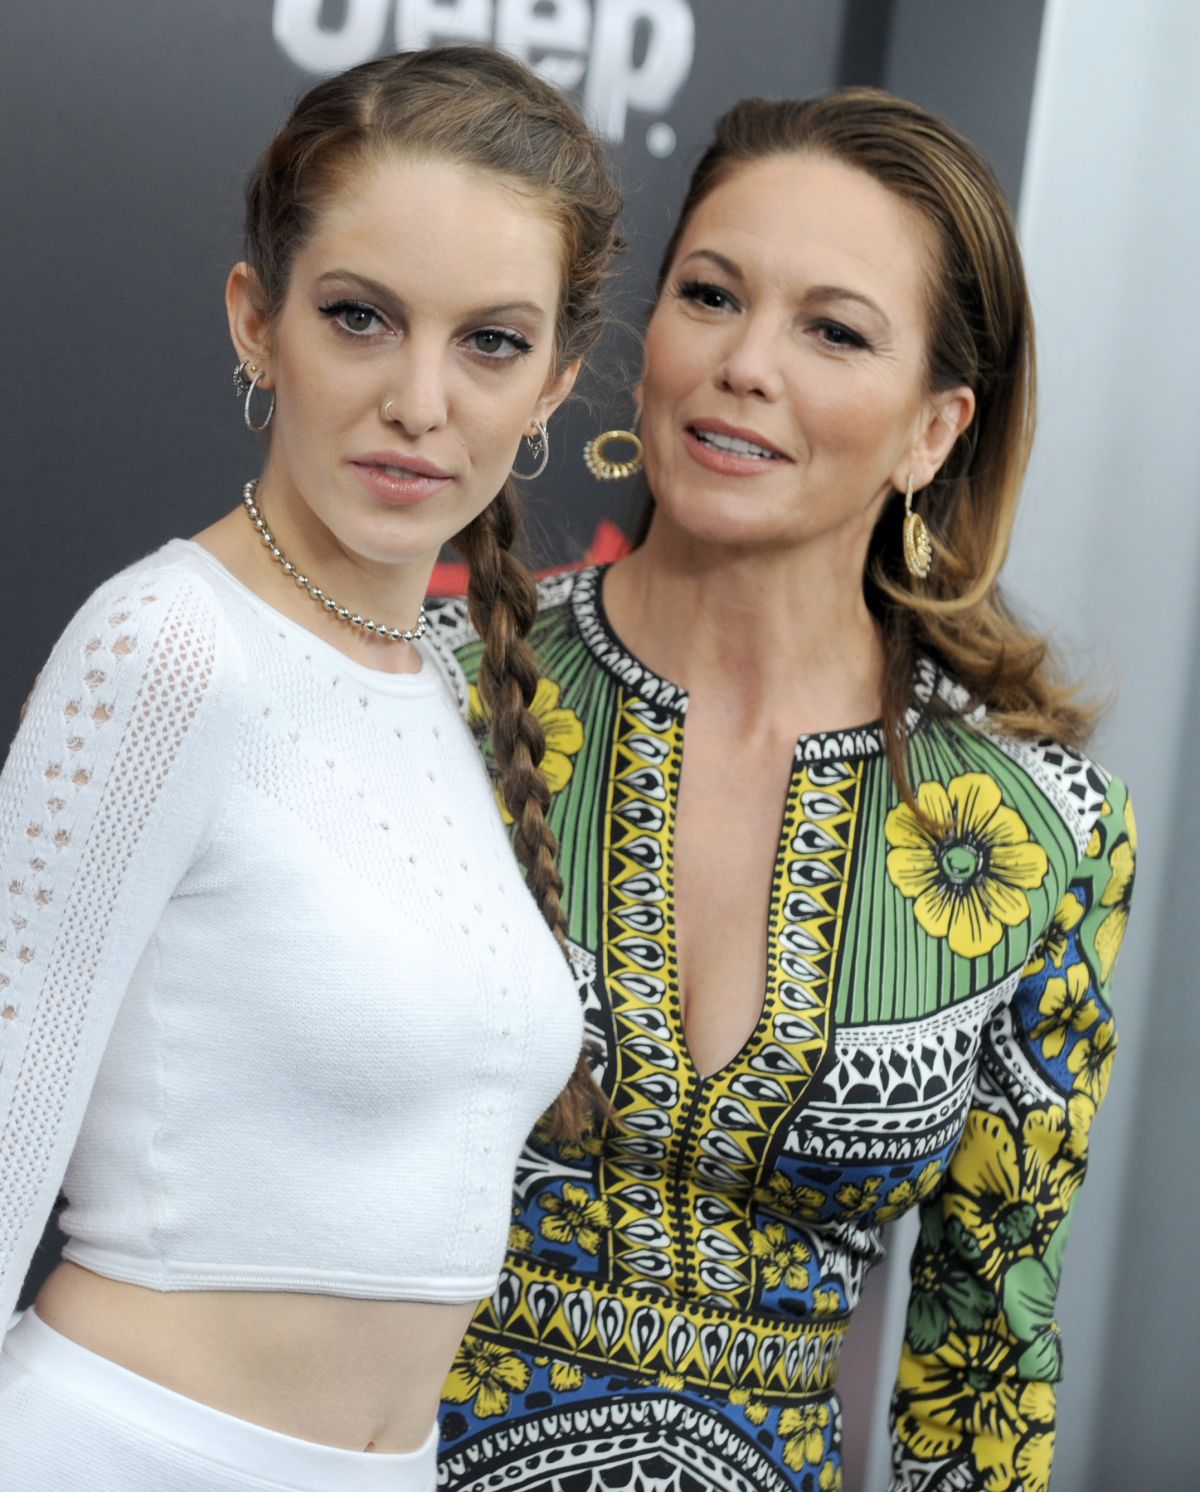 DIANE LANE and ELEANOR LAMBERT at Batman vs Superman: Dawn of Justice Premiere in New York 03/20/2016